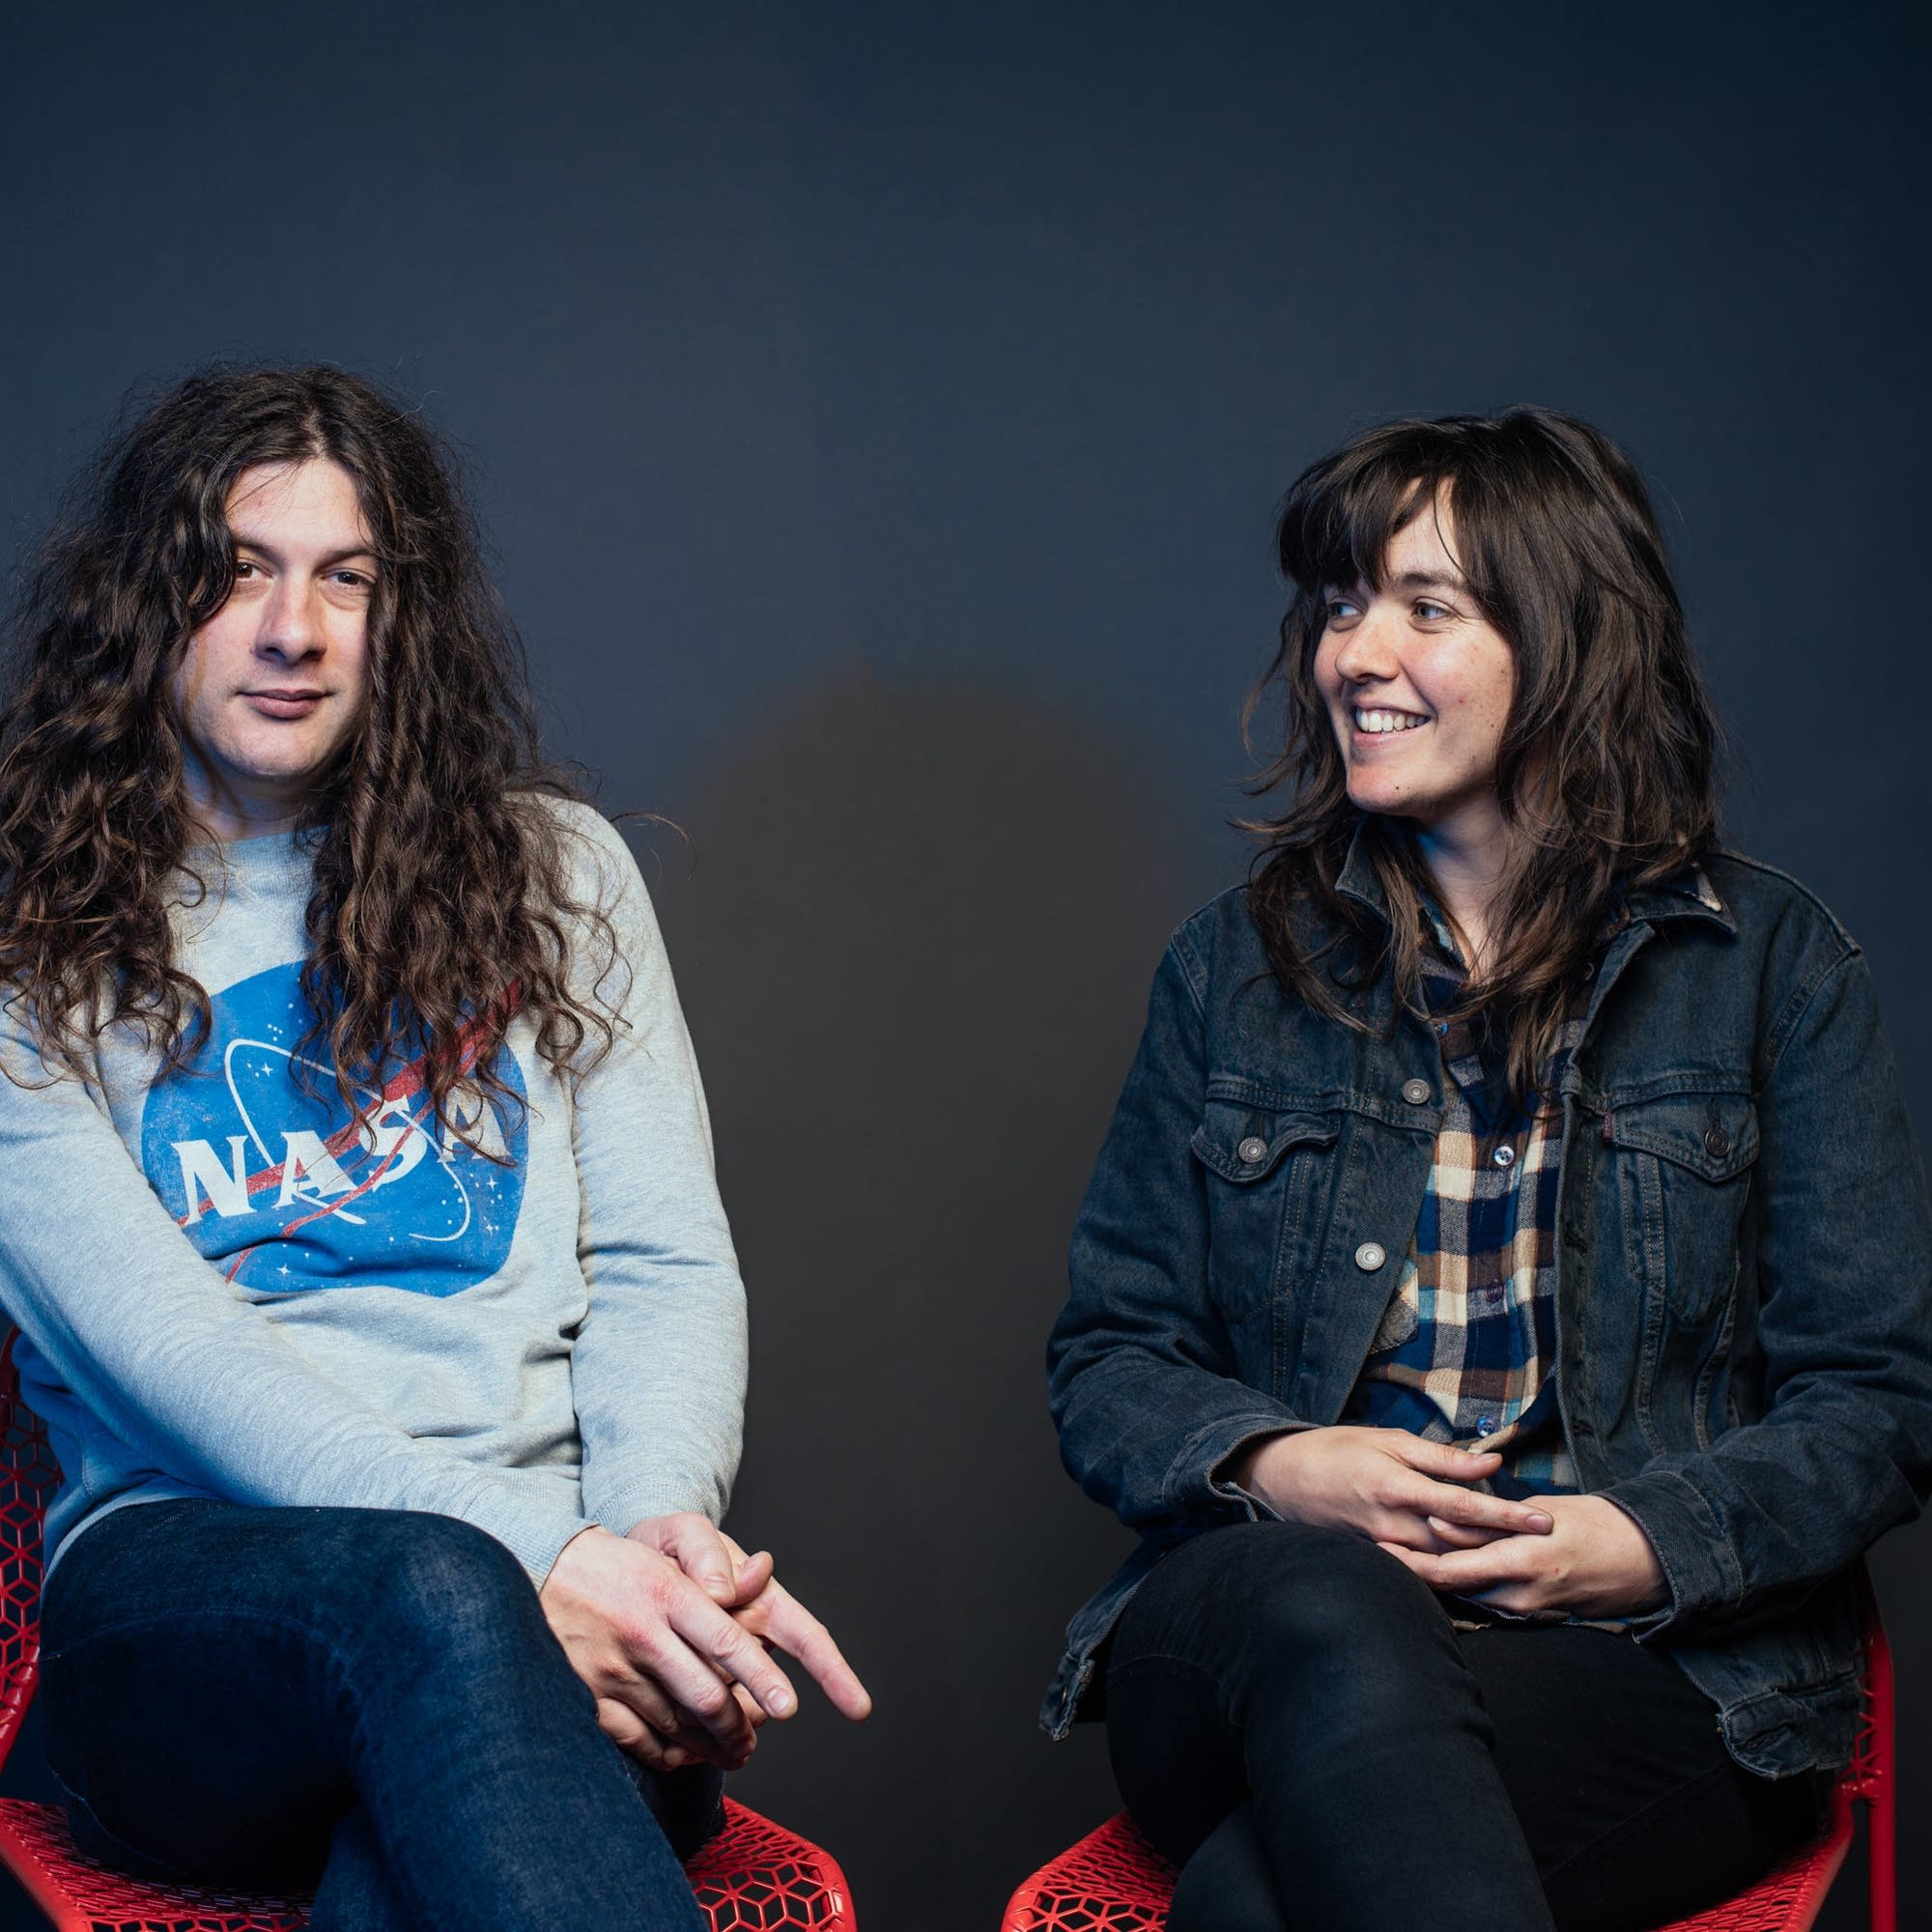 Kurt Vile and Courtney Barnett portrait at The Current